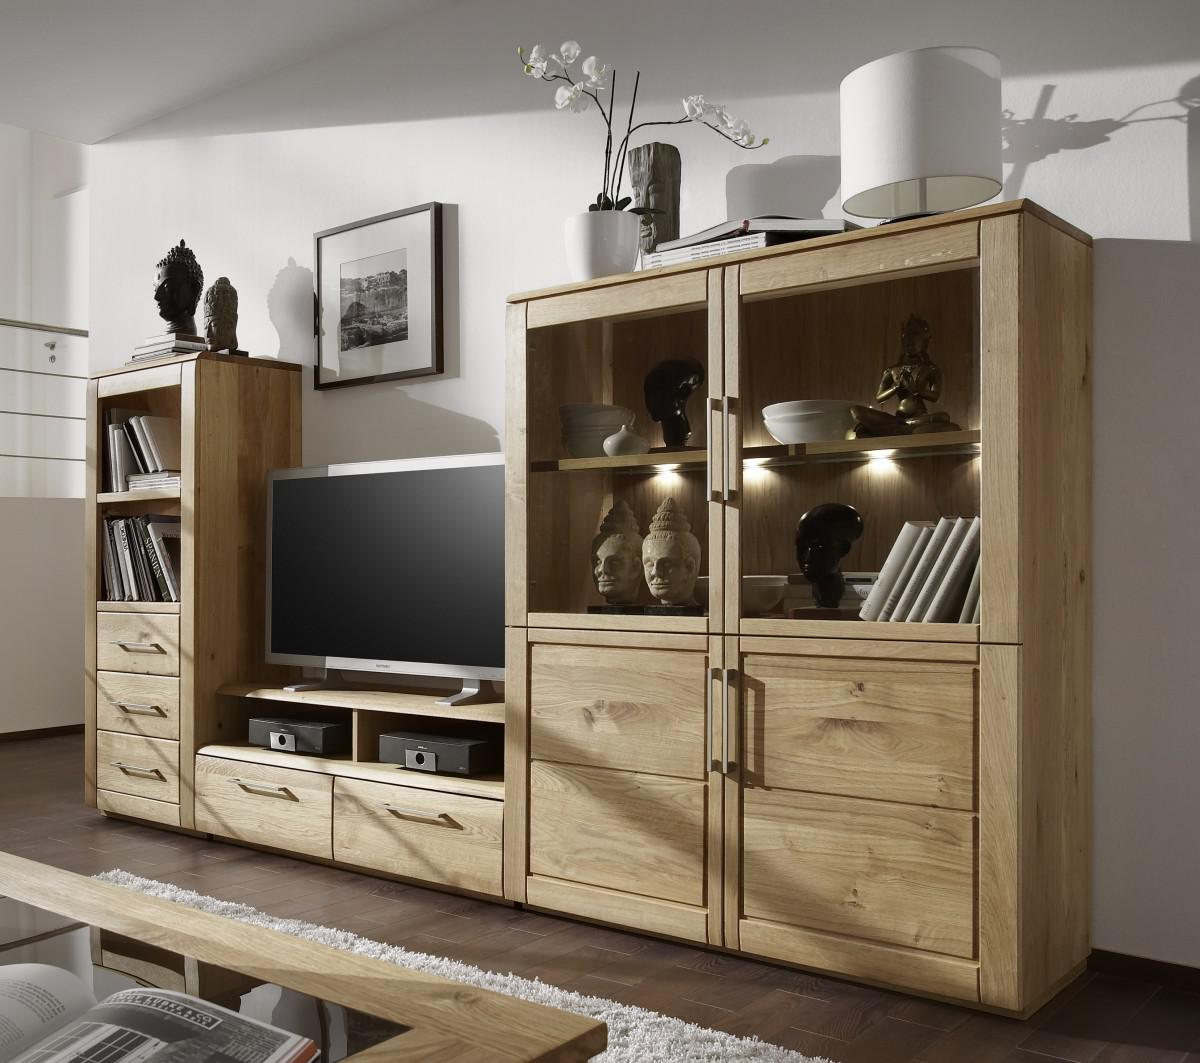 wohnwand tv wohnzimmerwand fernsehwand wildeiche ge lt massiv natur rustikal kaufen bei saku. Black Bedroom Furniture Sets. Home Design Ideas